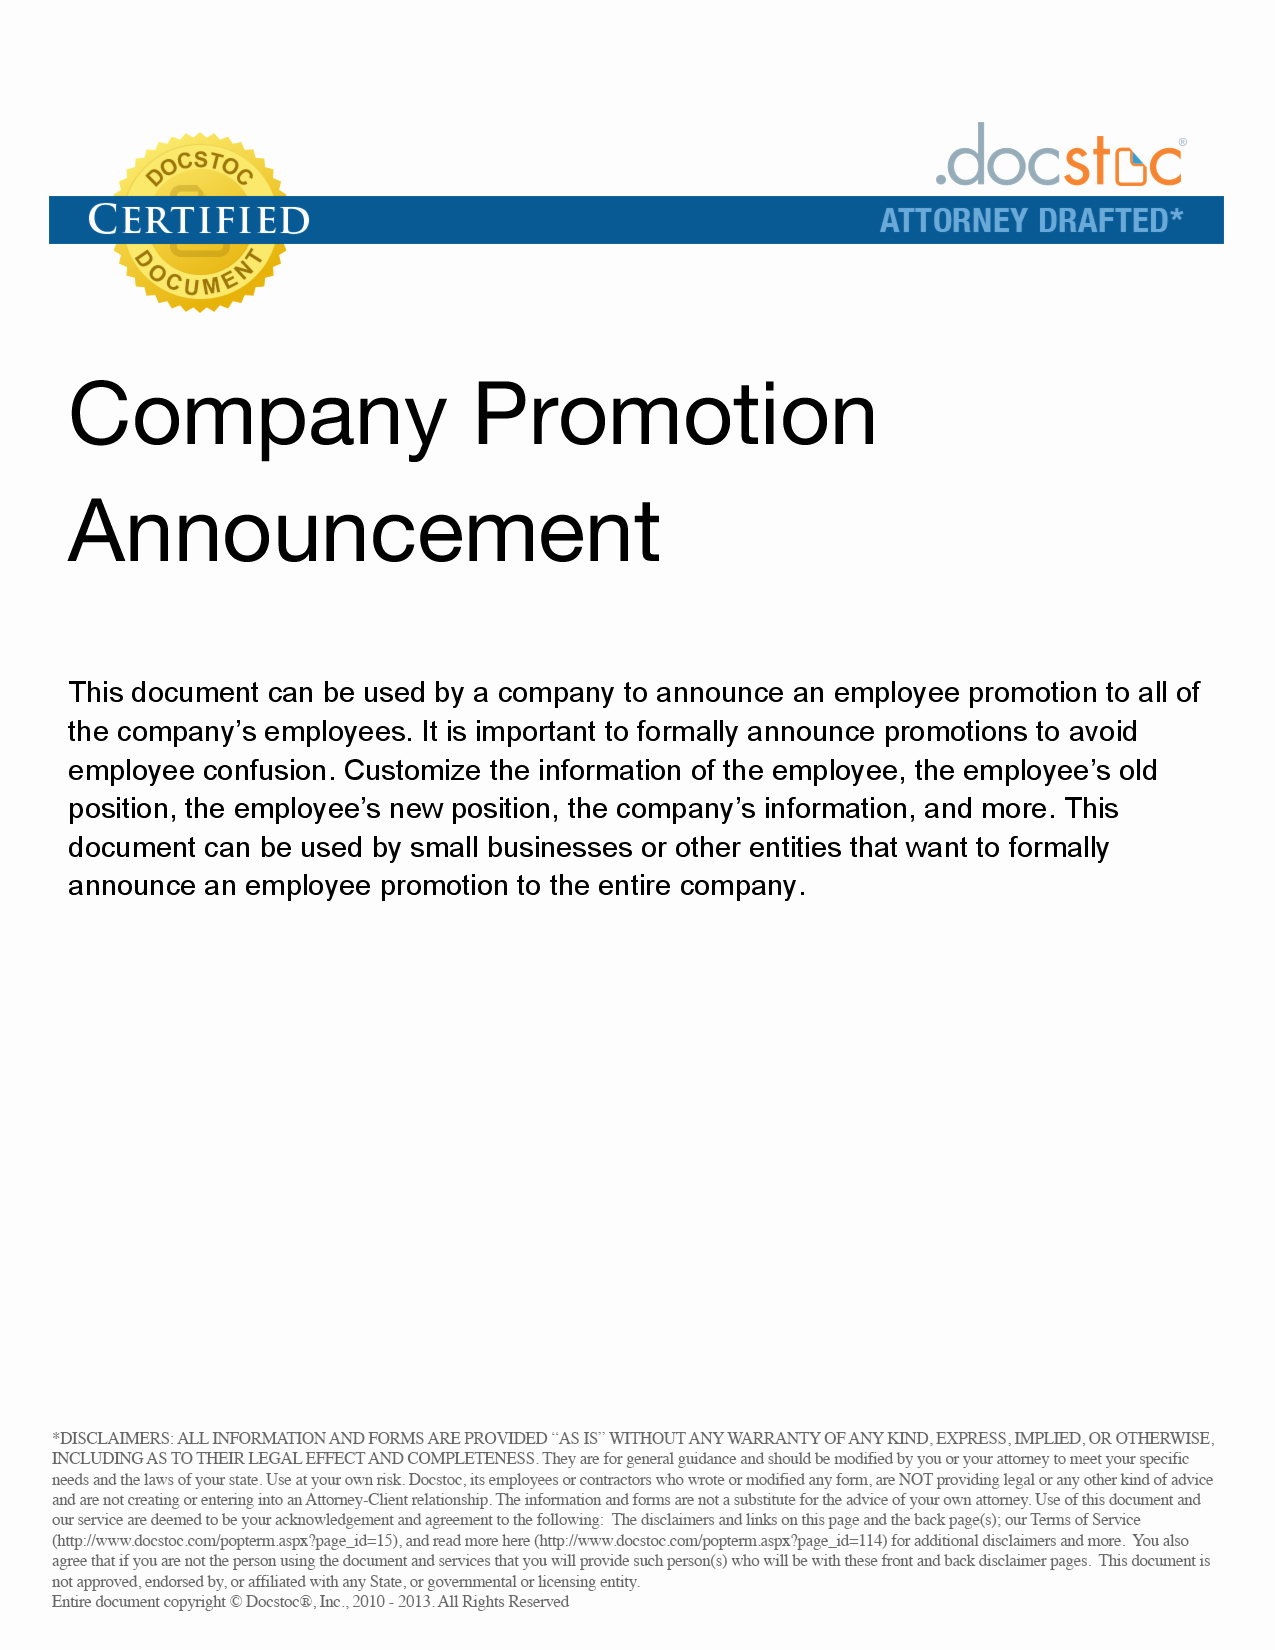 post job promotion announcement examples